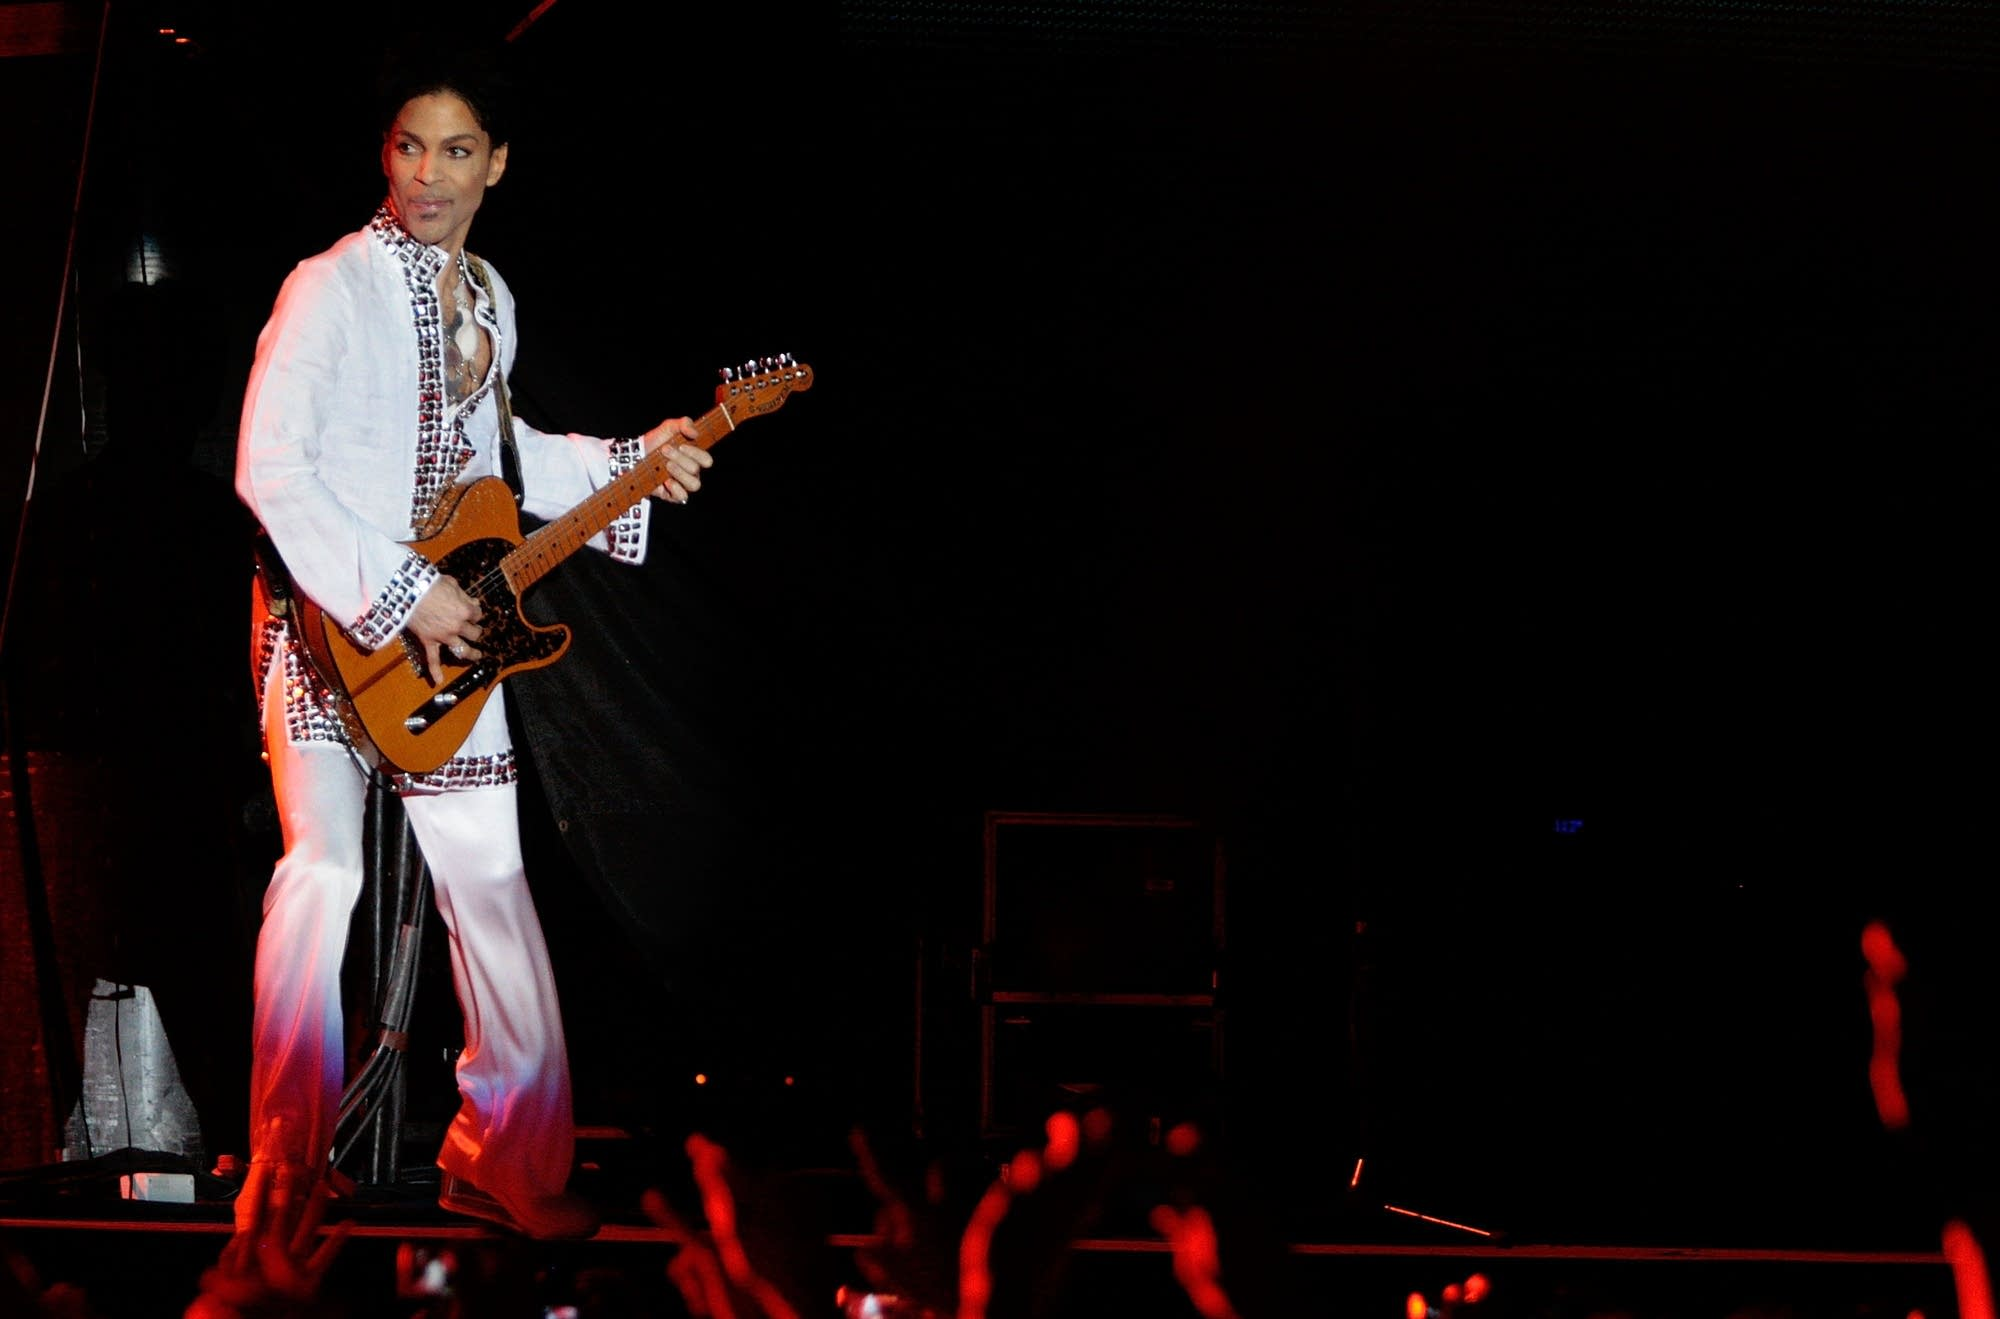 Prince performing at Coachella in 2008